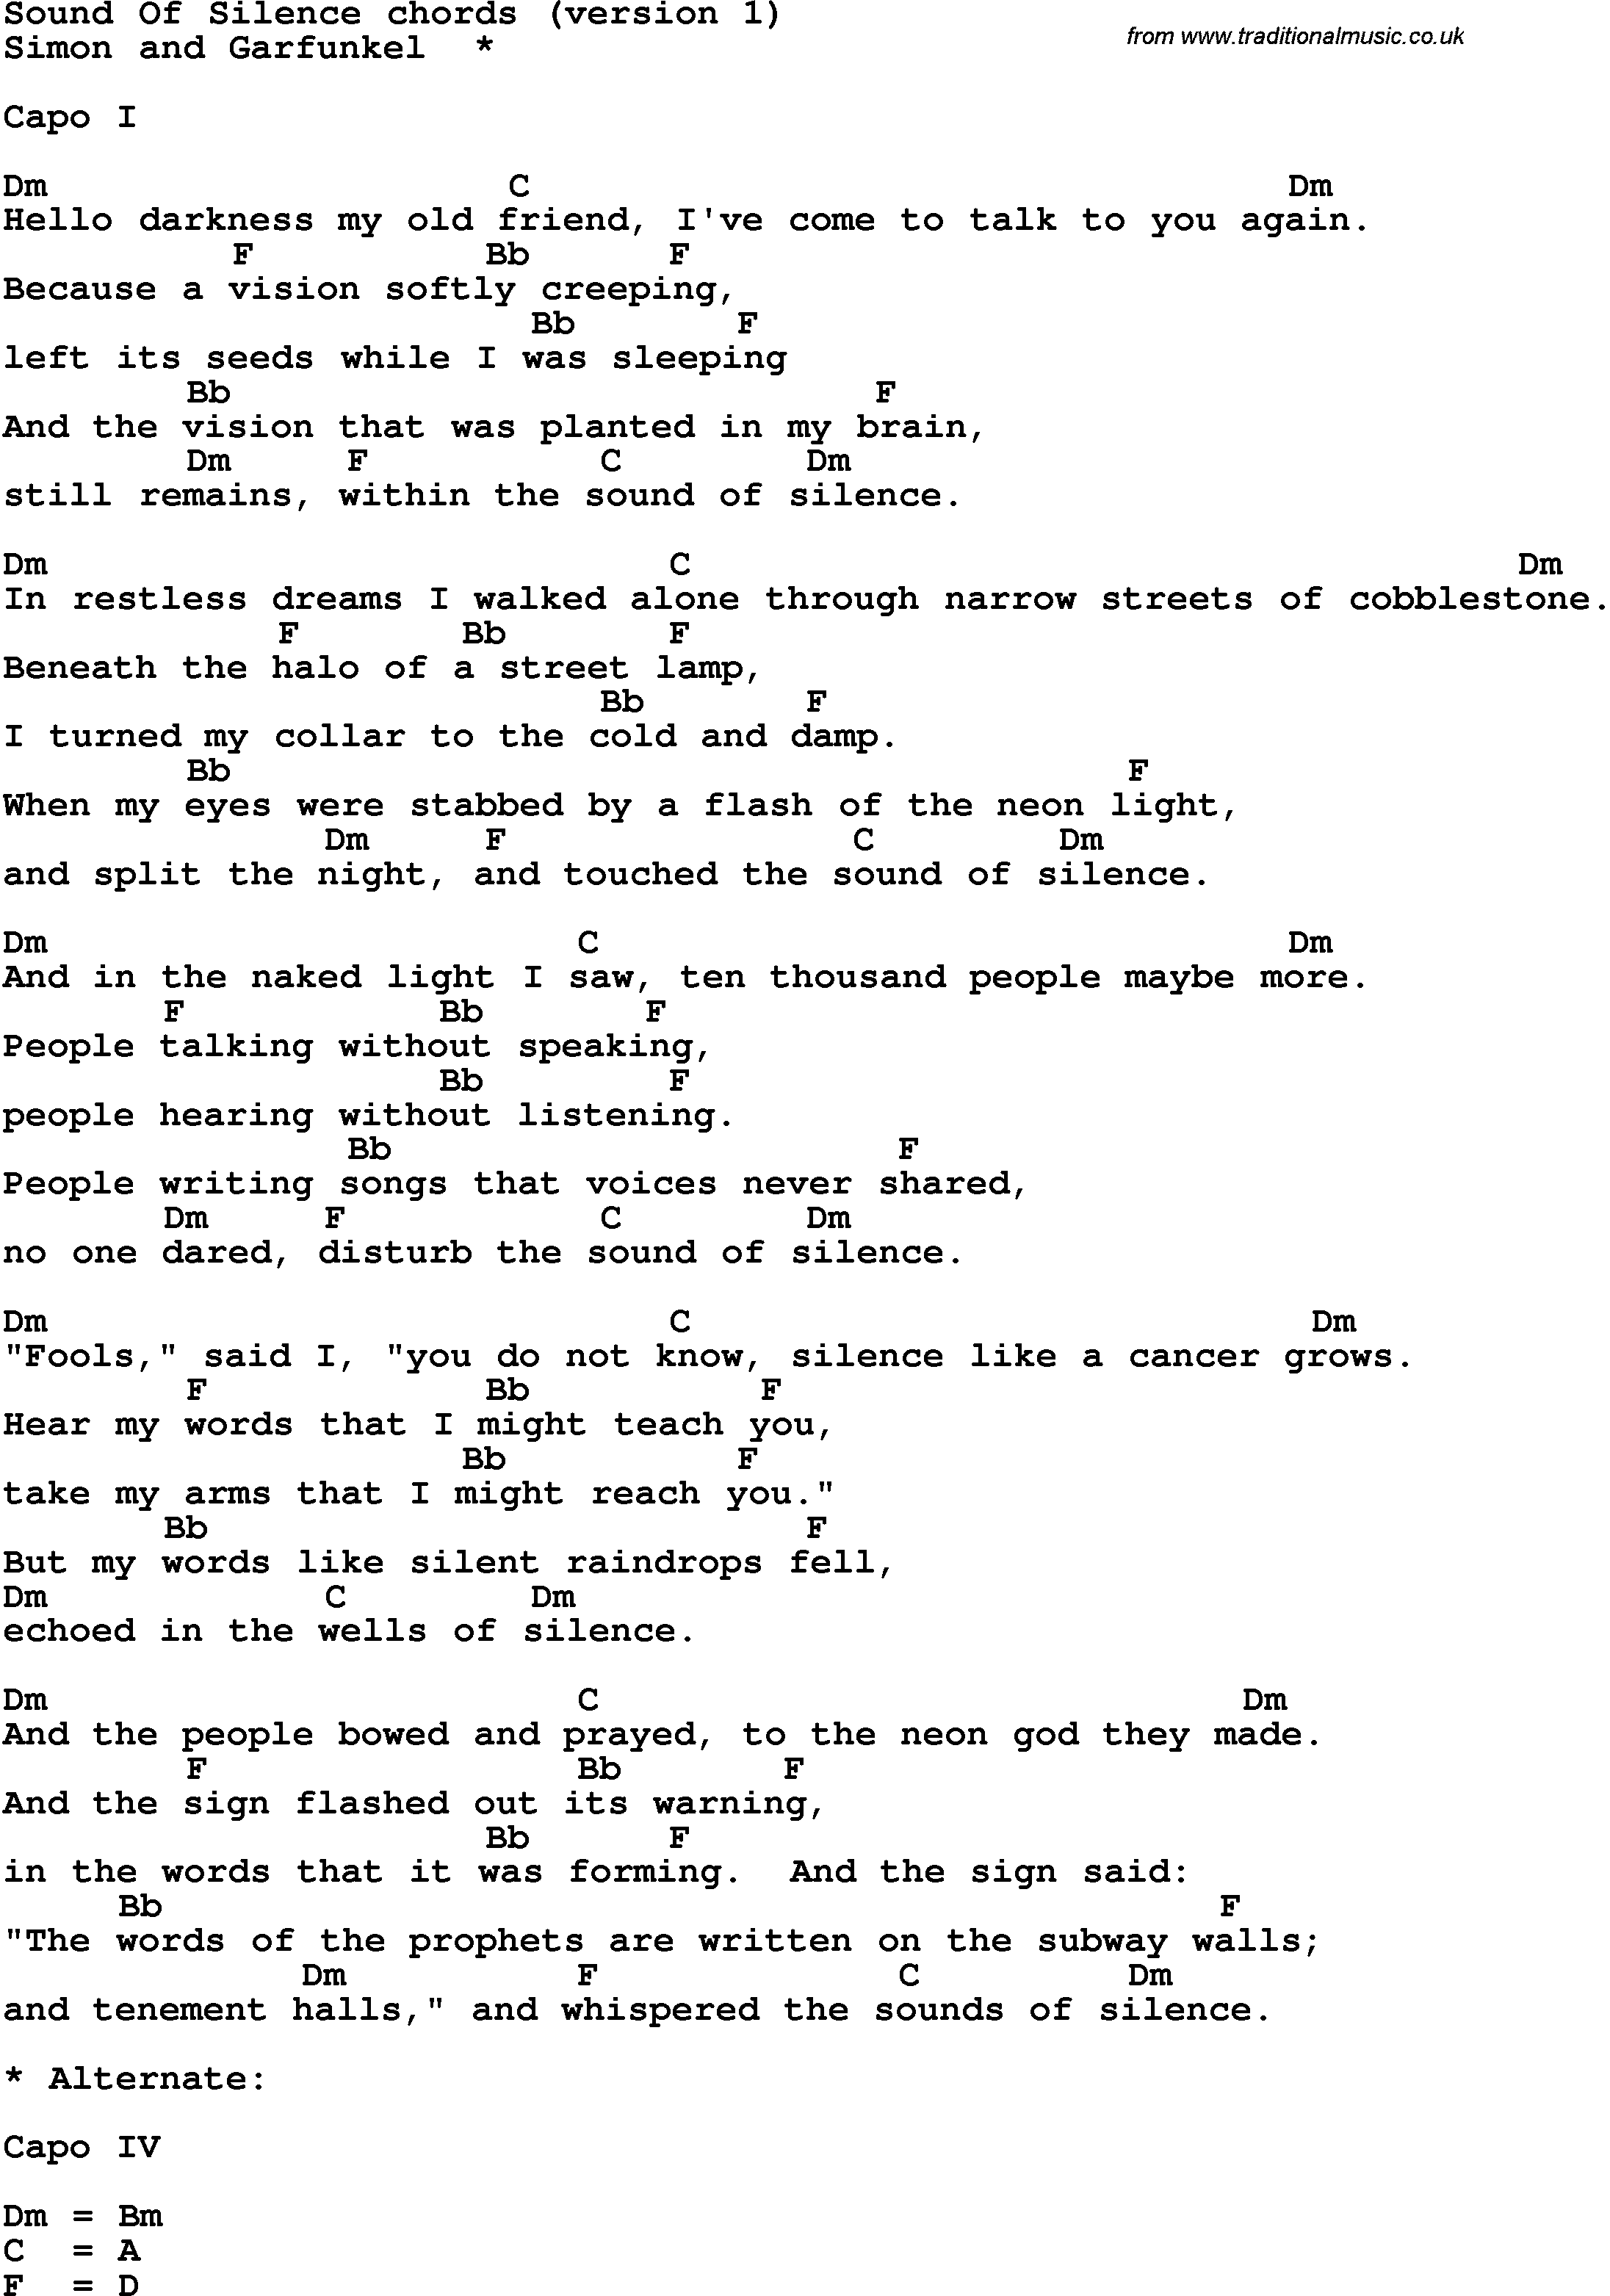 Song Lyrics with guitar chords for Sound Of Silence : inspire me : Pinterest : Guitar chords ...